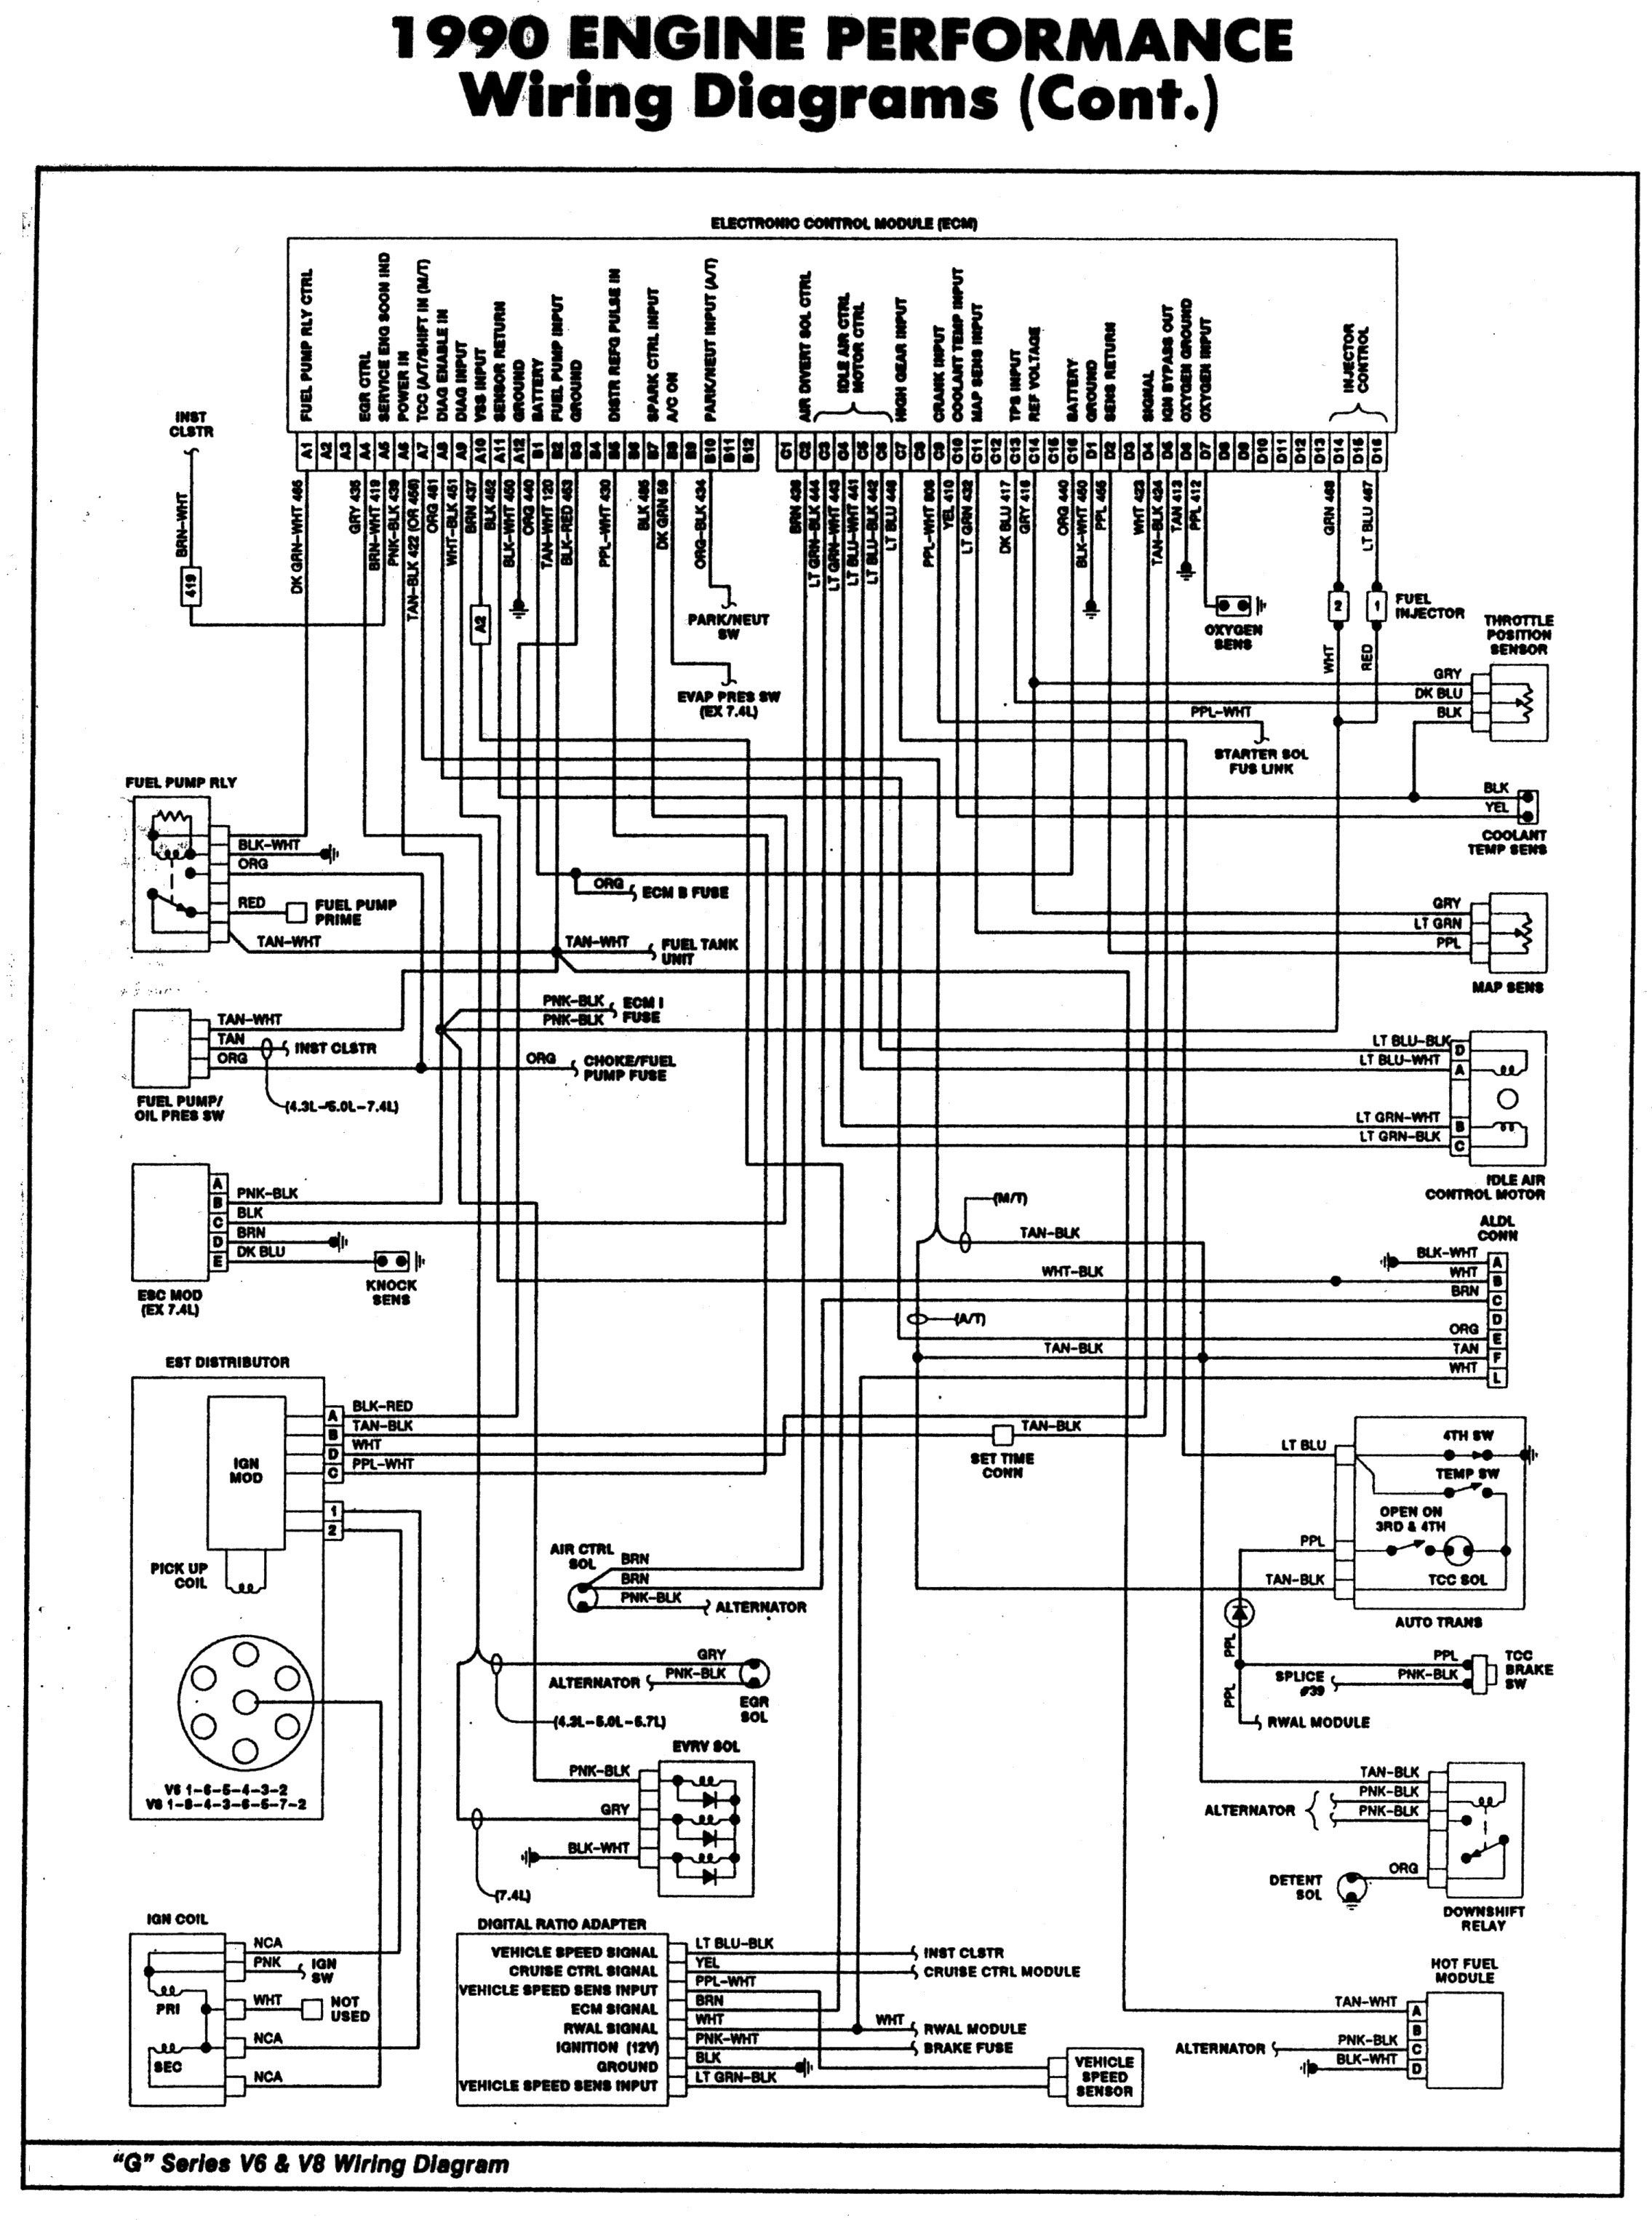 89 gmc wiring diagram wiring diagram  1989 chevrolet c1500 wiring diagram #12